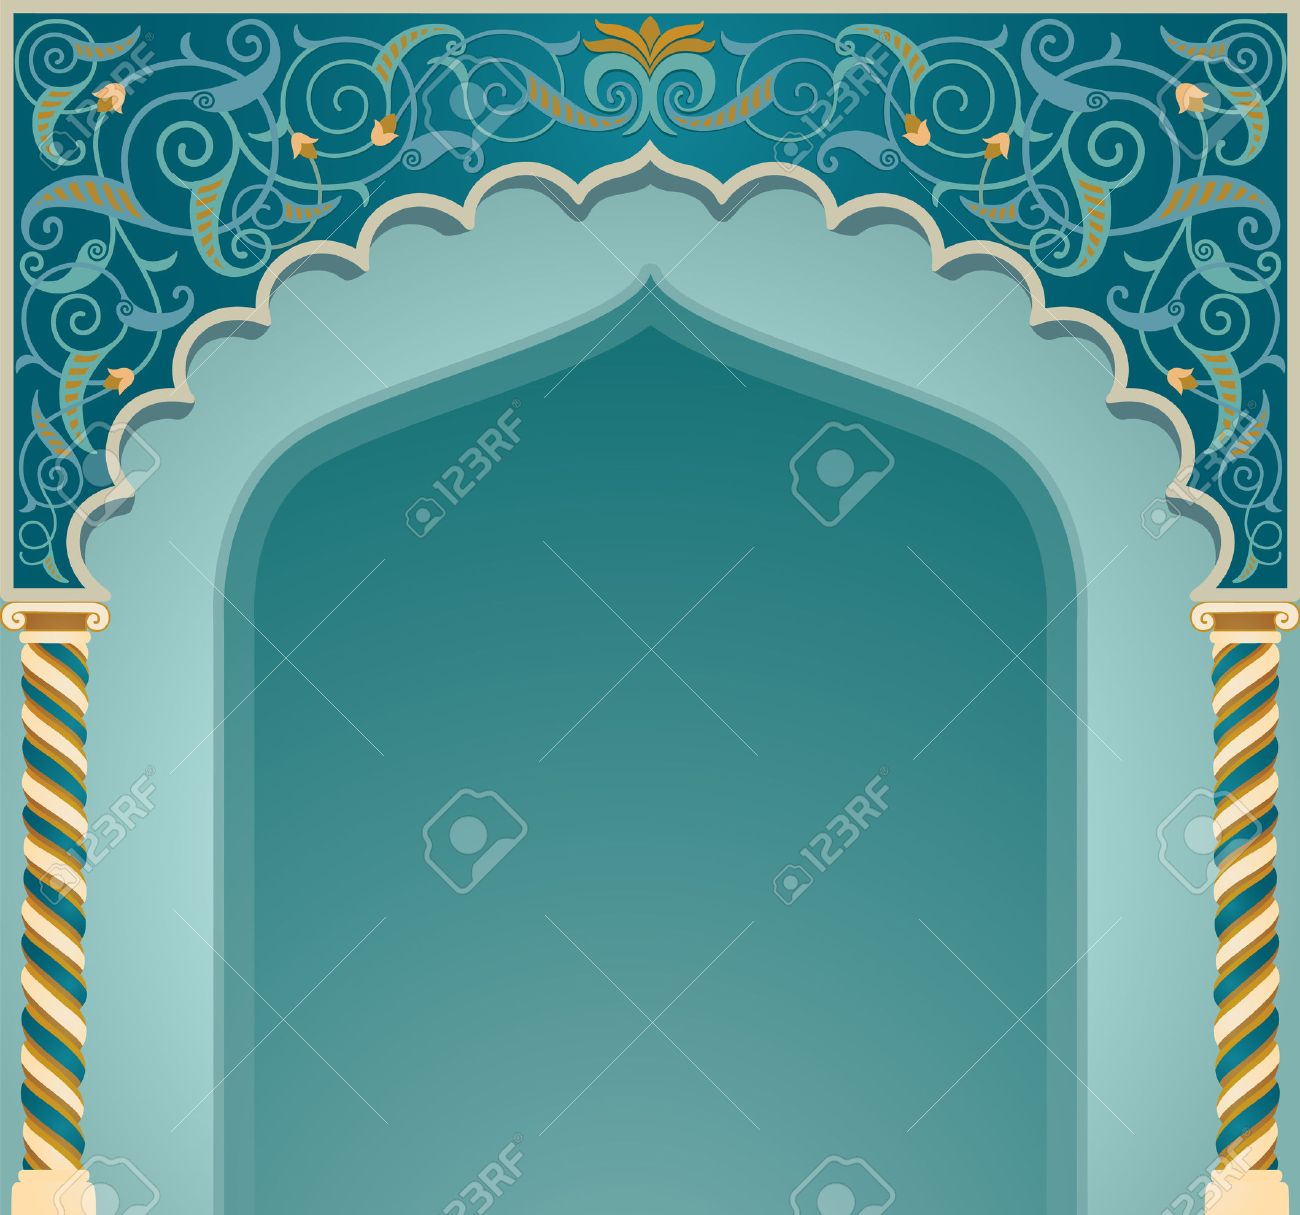 Vector vector illustration if islamic arch design